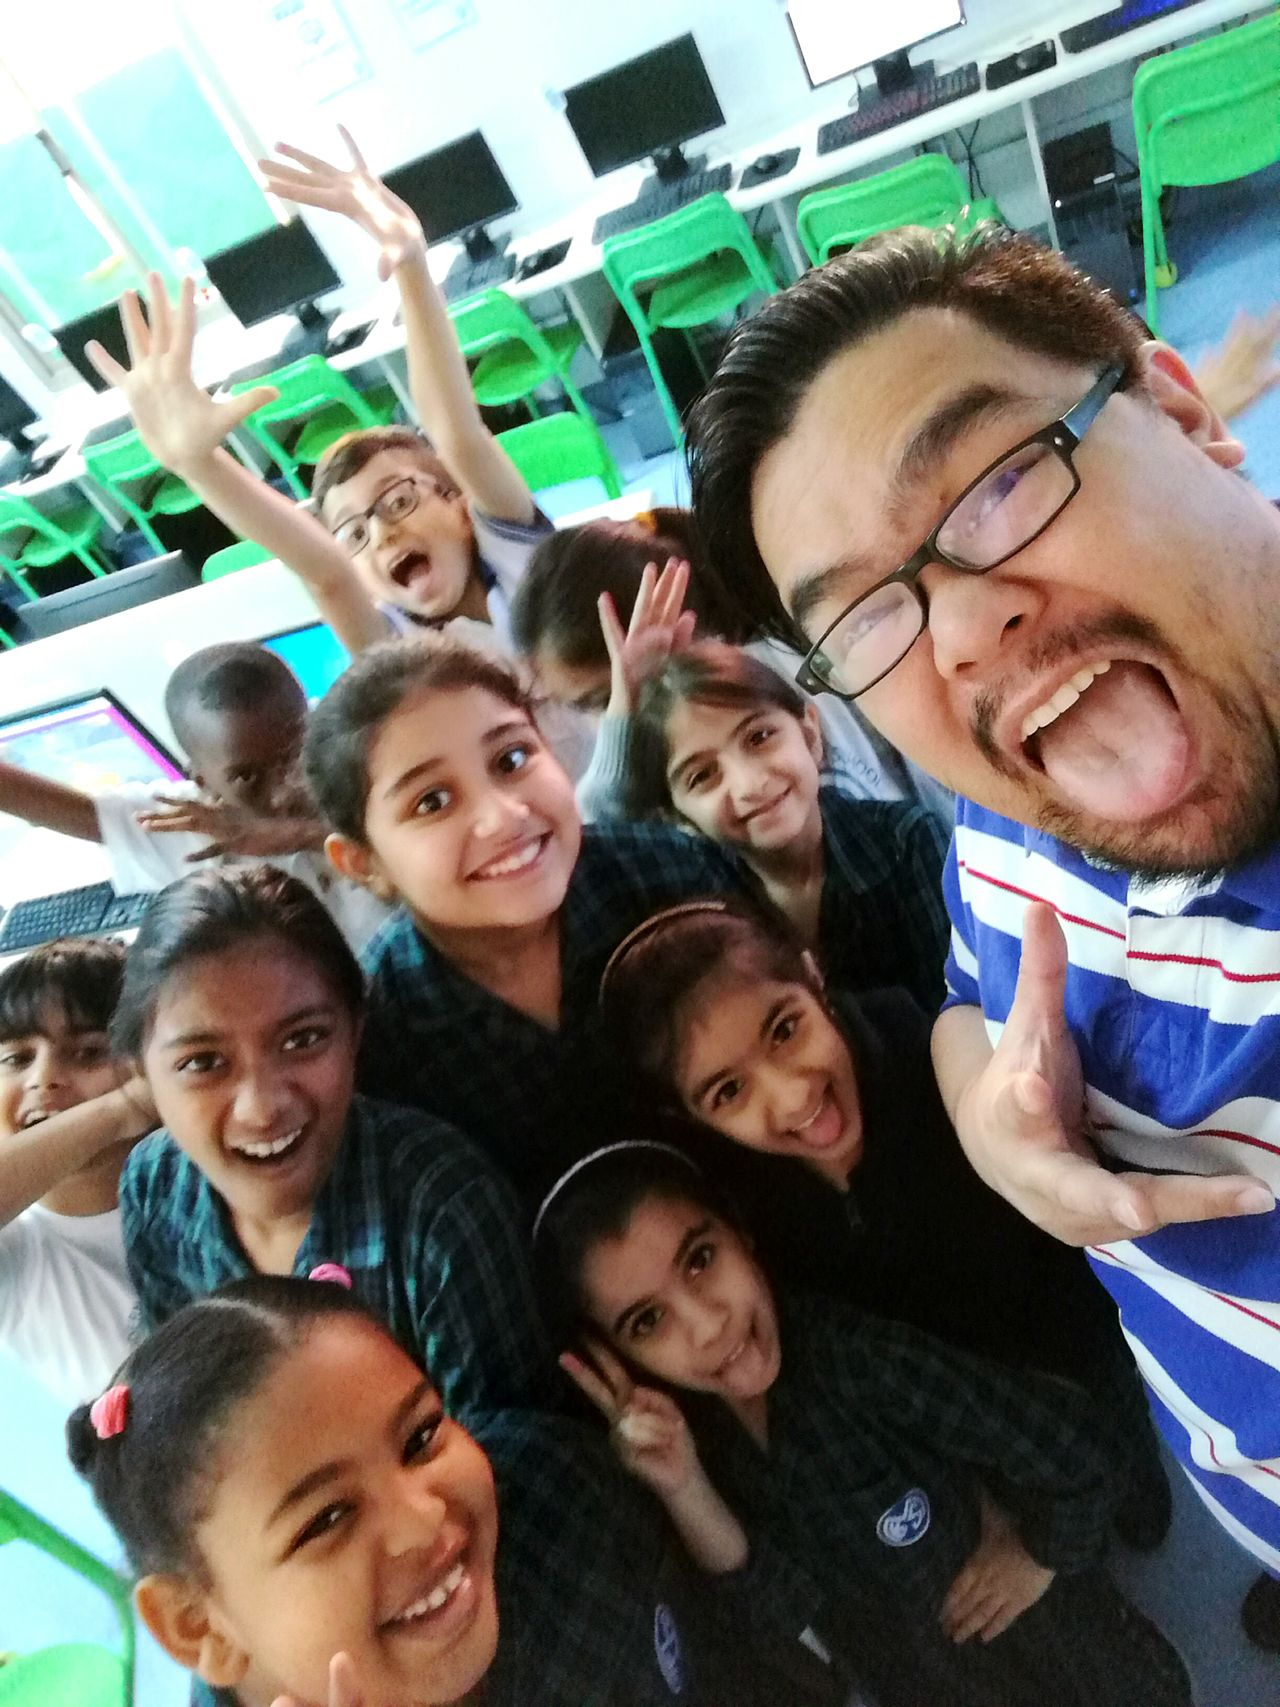 See you my beautiful and handsome students in 2017!! My Year My View Real People Selfie Groupfie Cheerful Smiling Fun Happiness Winter Break  Seeyousoon Mystudents LoveMyWork Teacherslife Bahrain